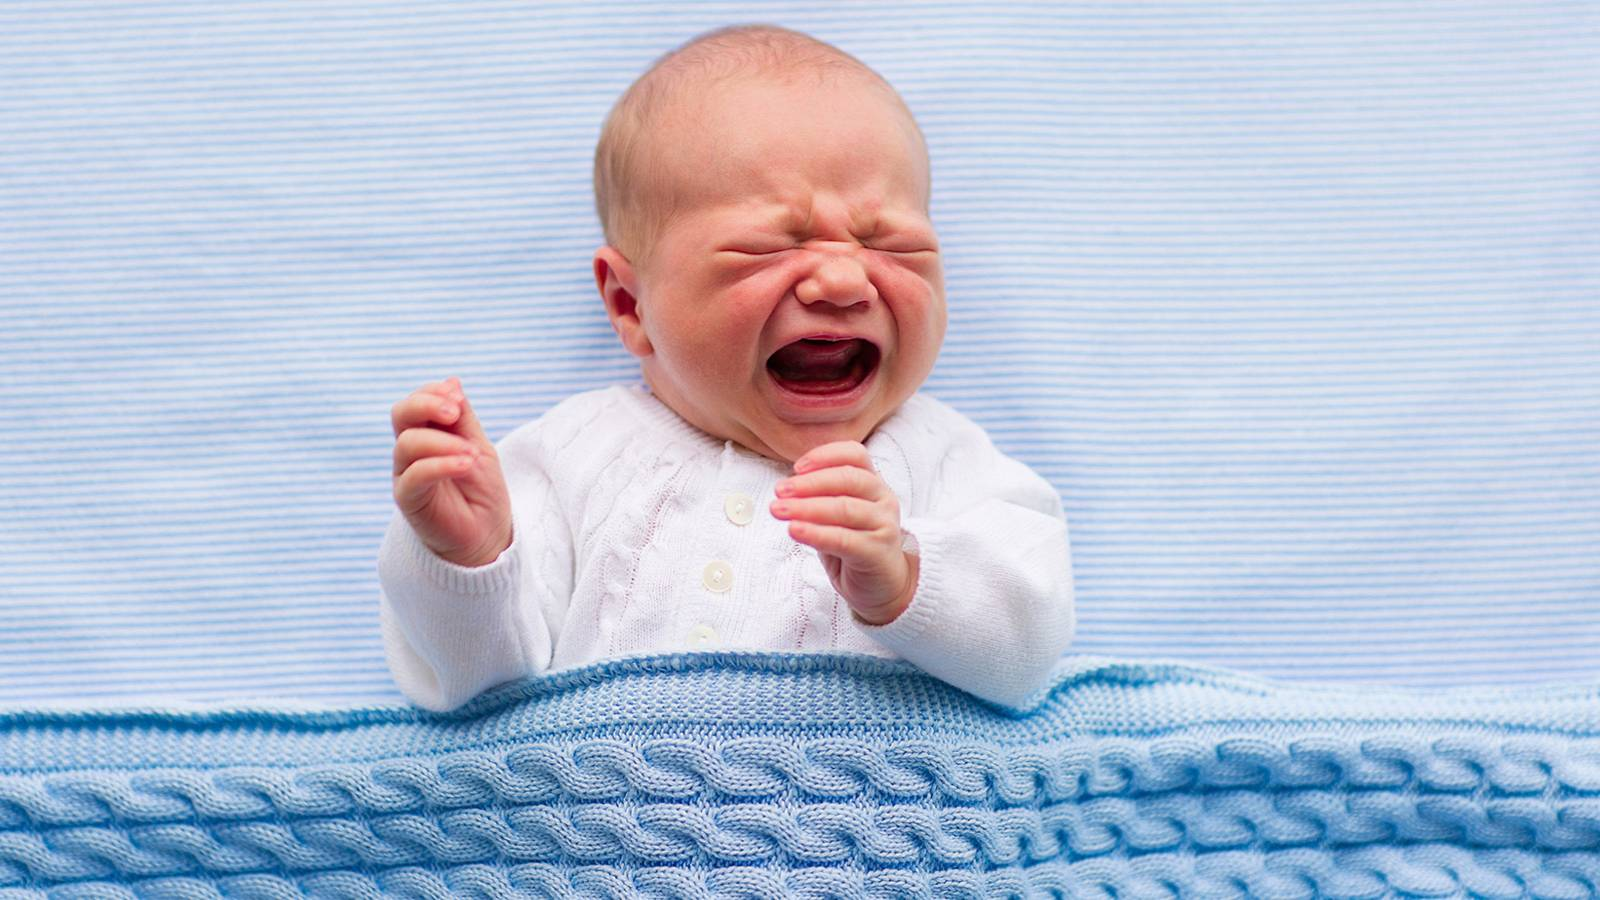 Babies-6-reasons-why-baby-isn't-sleeping